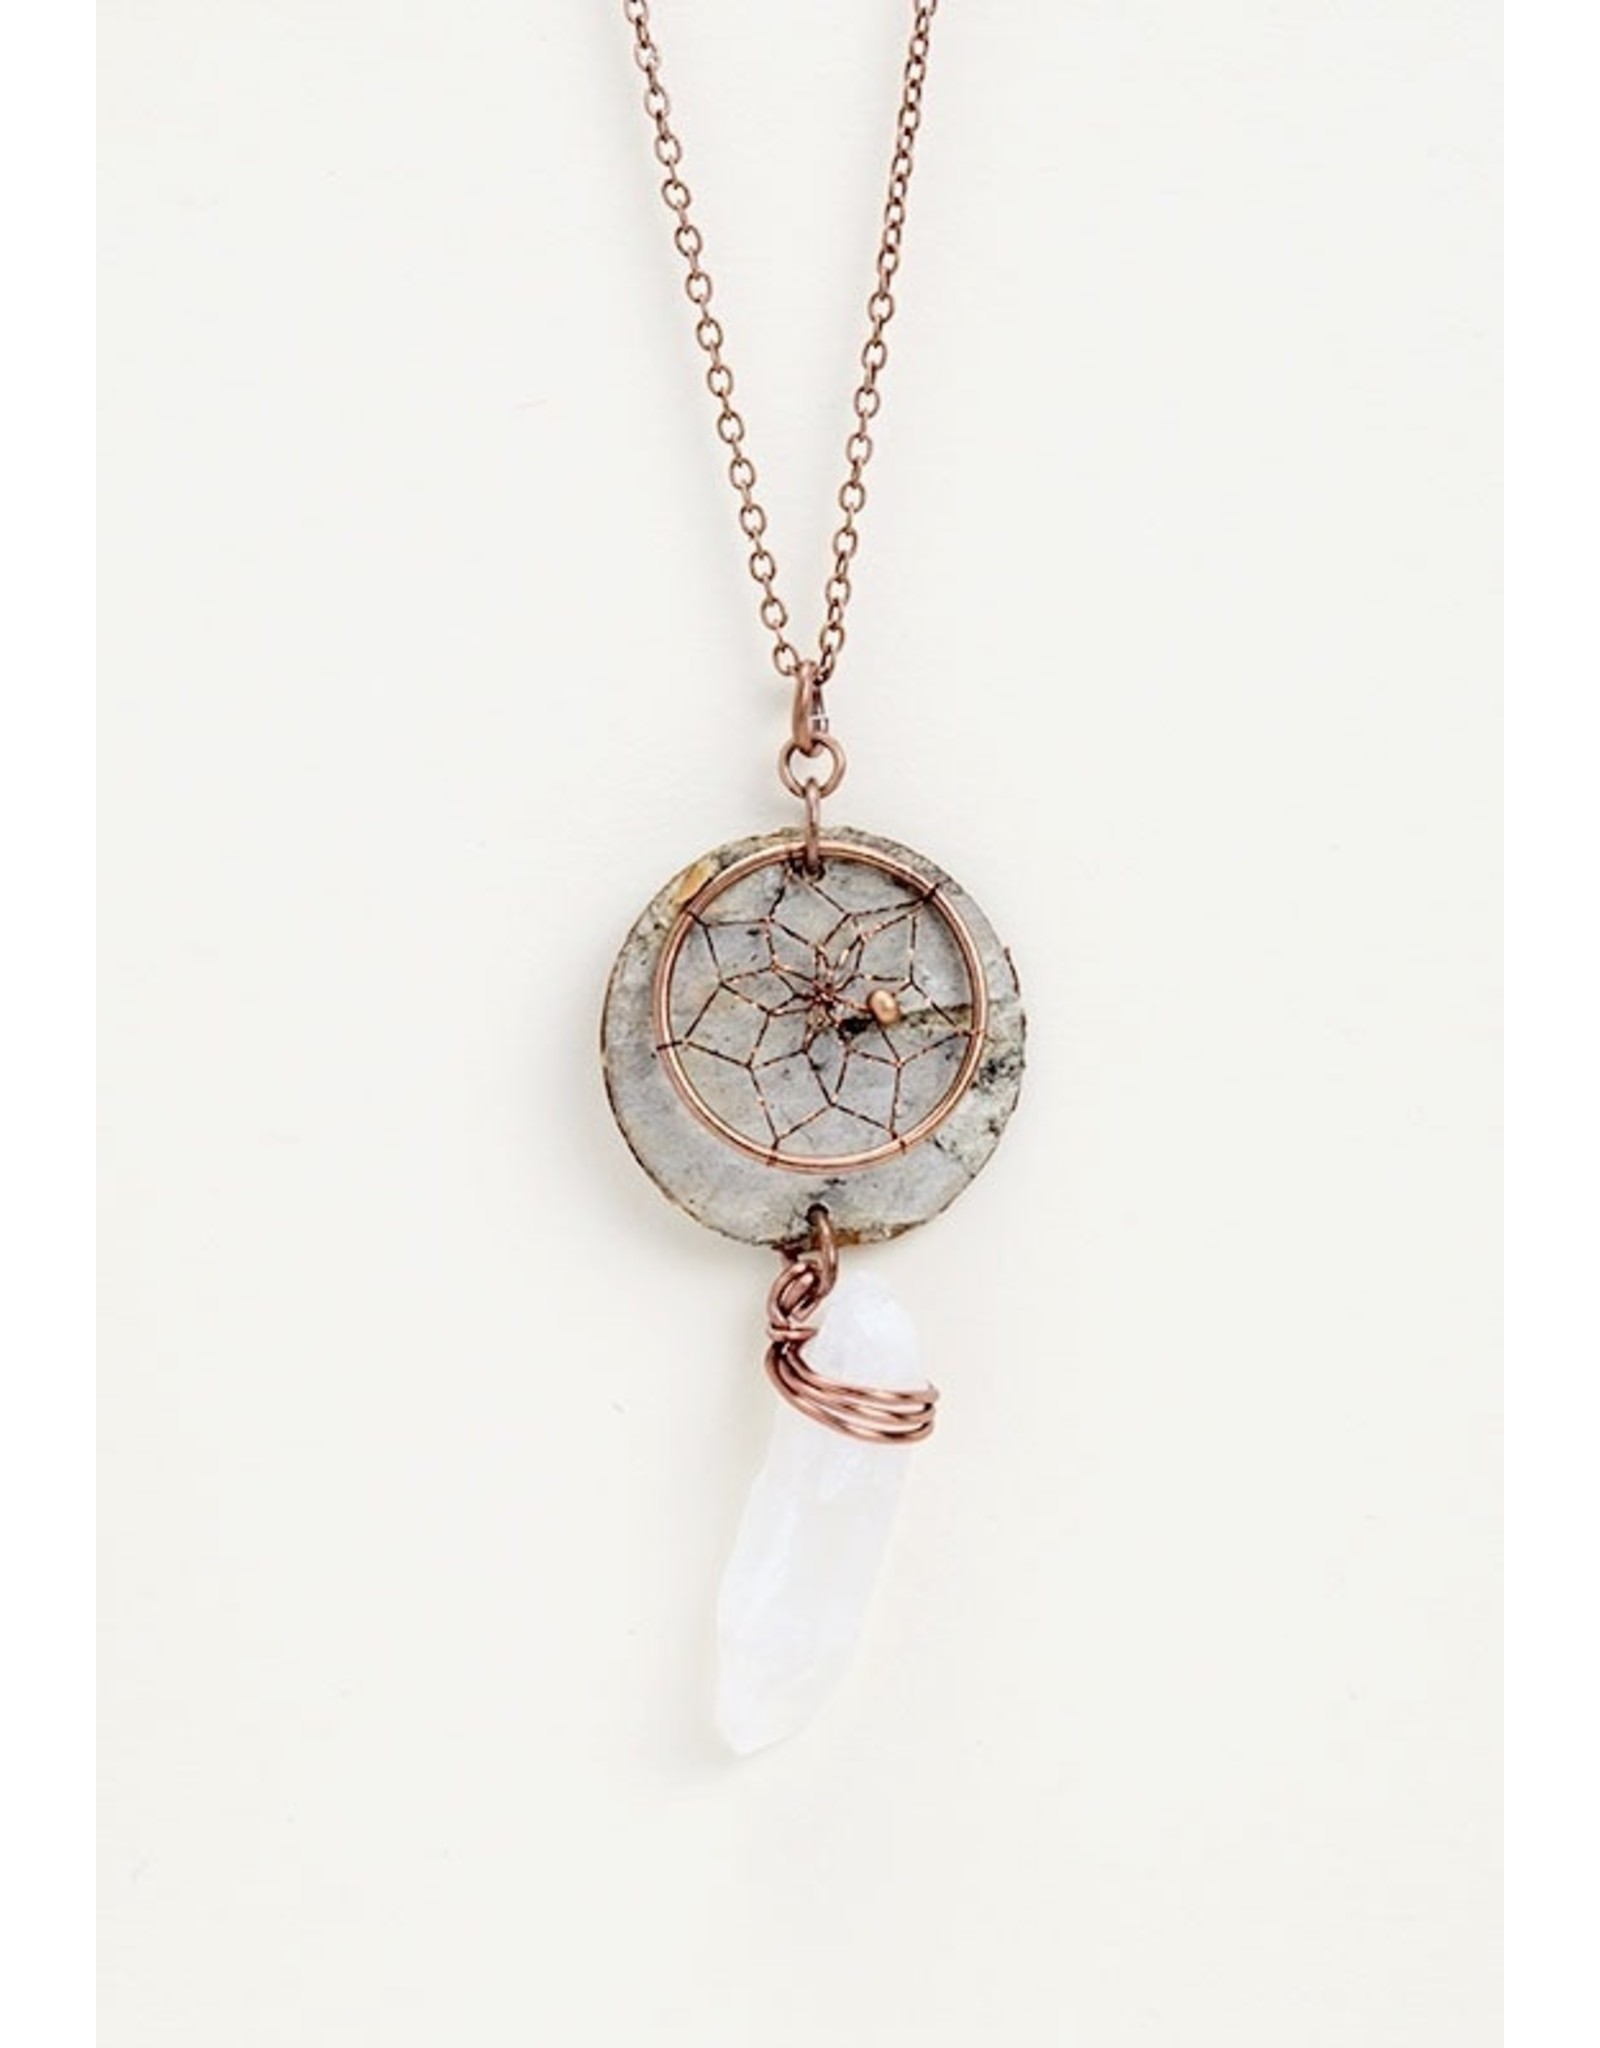 Birch Bark Dreamcatcher Necklace - BB7-P